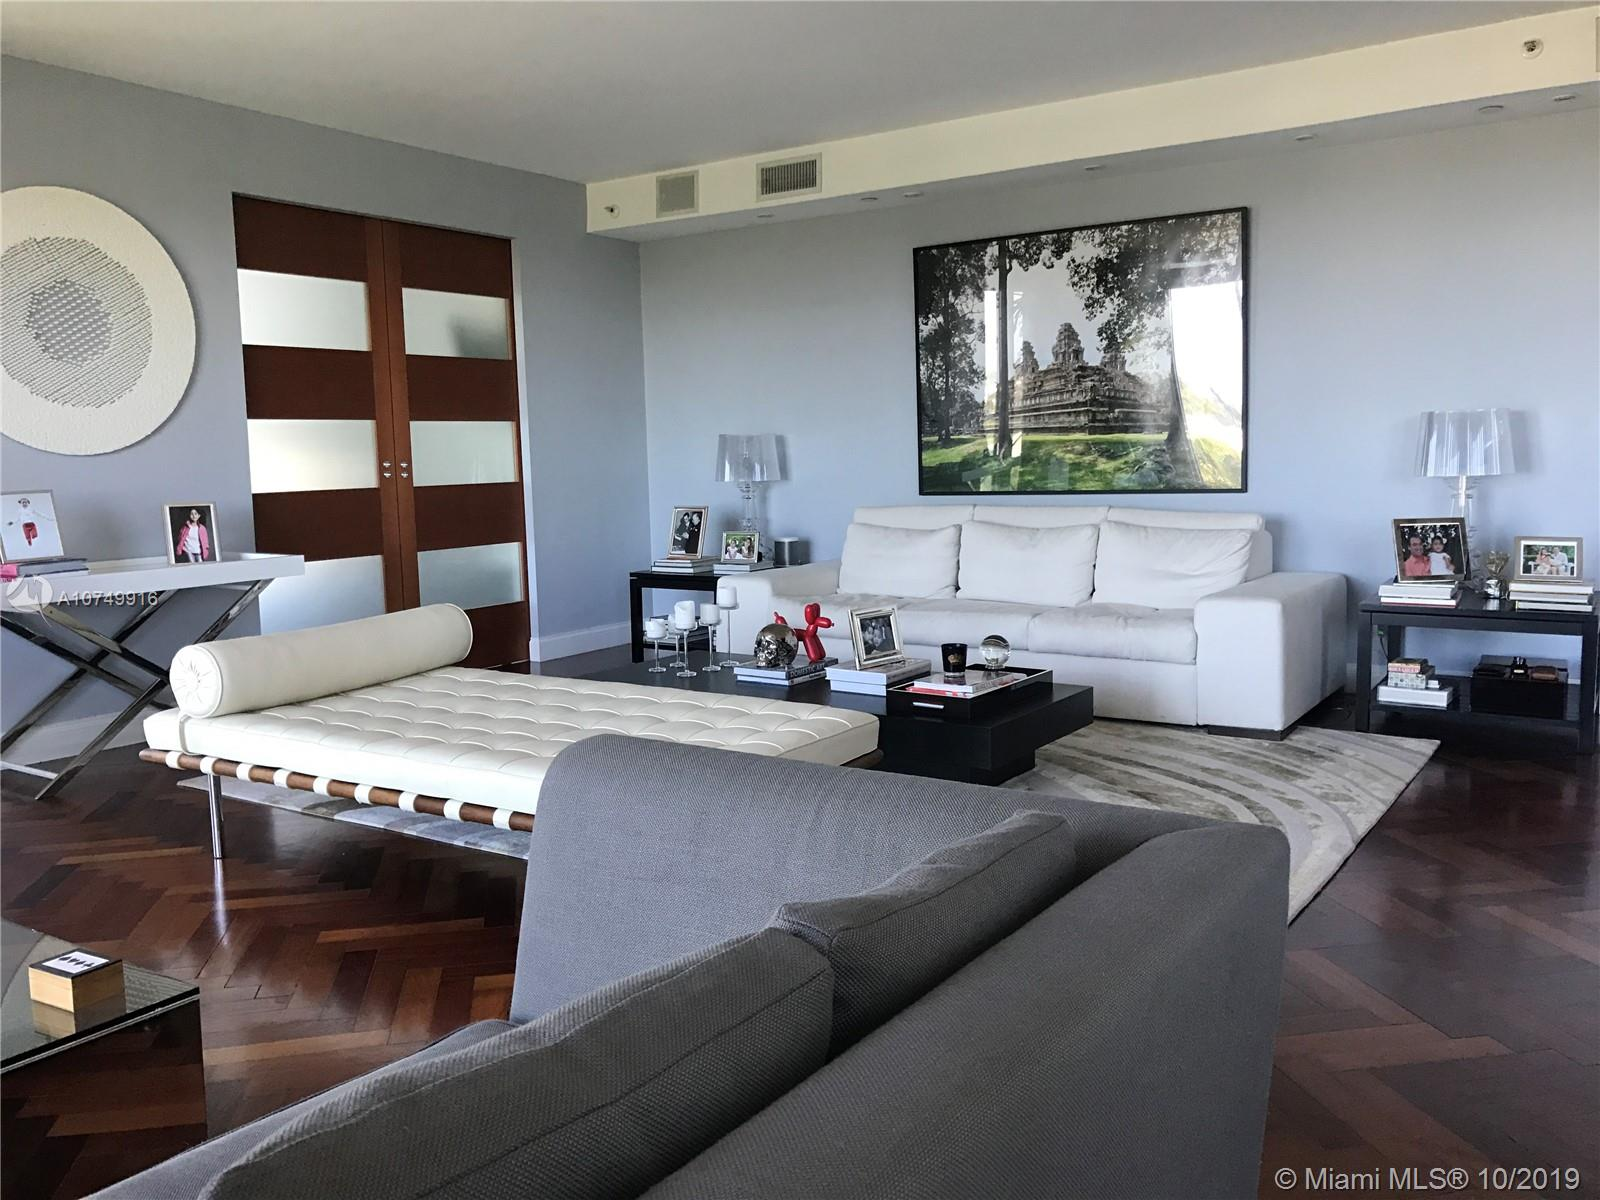 Key Biscayne Homes For Sale Search All Miami Houses For Sale